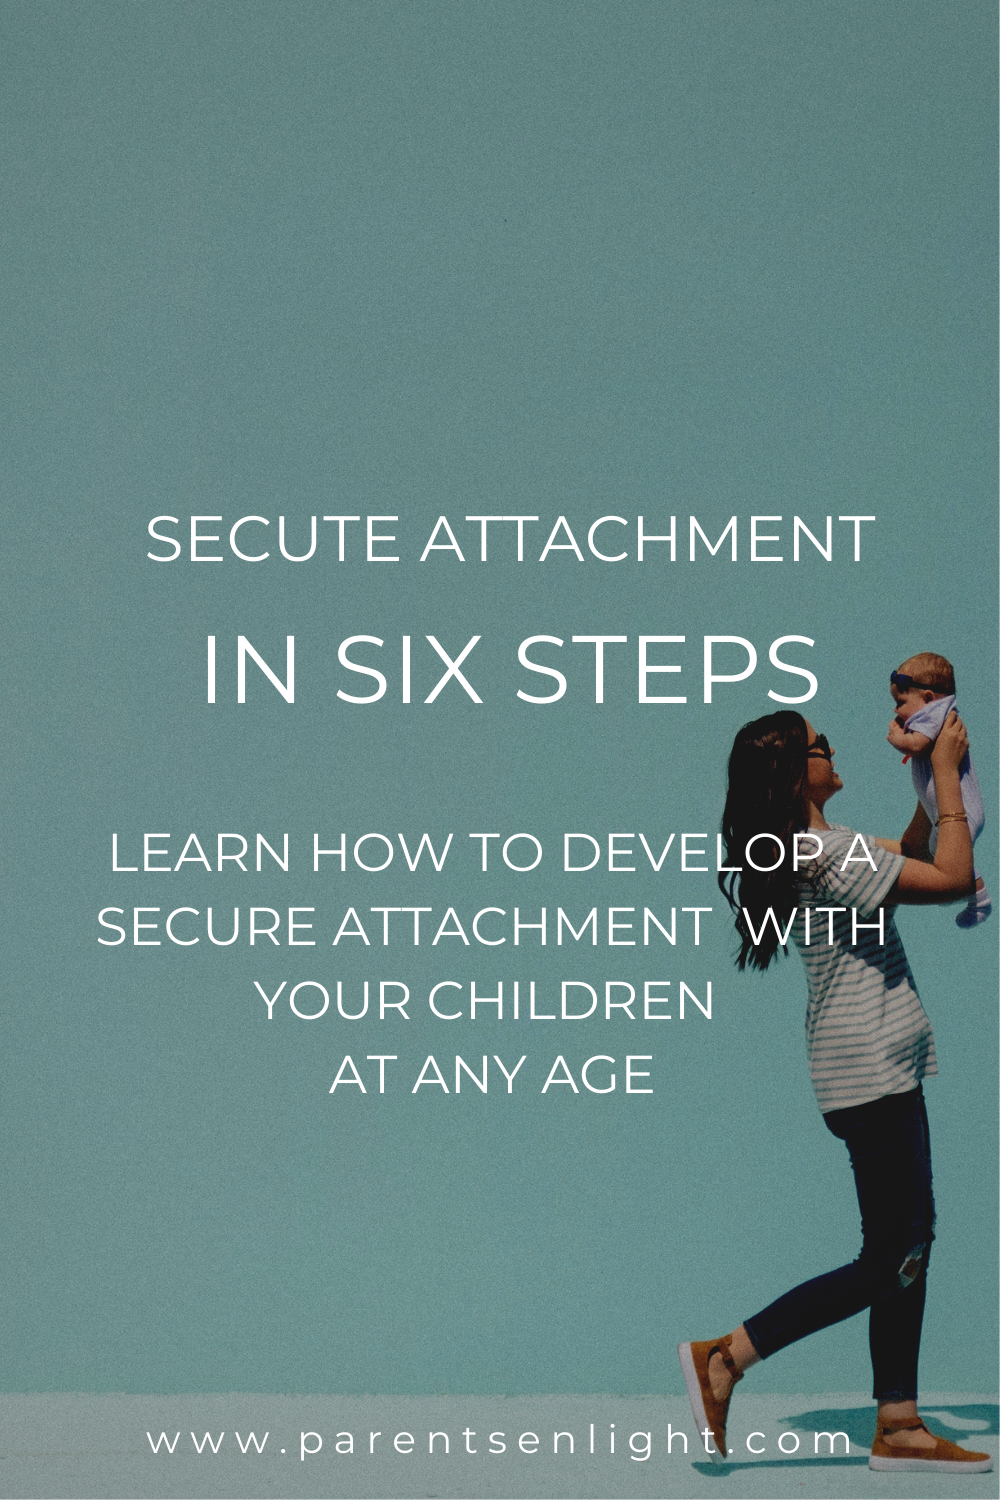 There's a reason to why some people connect while others don't. There's a reason to why some #relationships are productive and enjoyable, while others don't. Attachment is the science behind love and relationships. You can make it work with your children, no matter how old they are. #attachmentparenting #attachmenttheory #attachmentstyles #secureattachment #parenting #parentinghelp #parentingtips